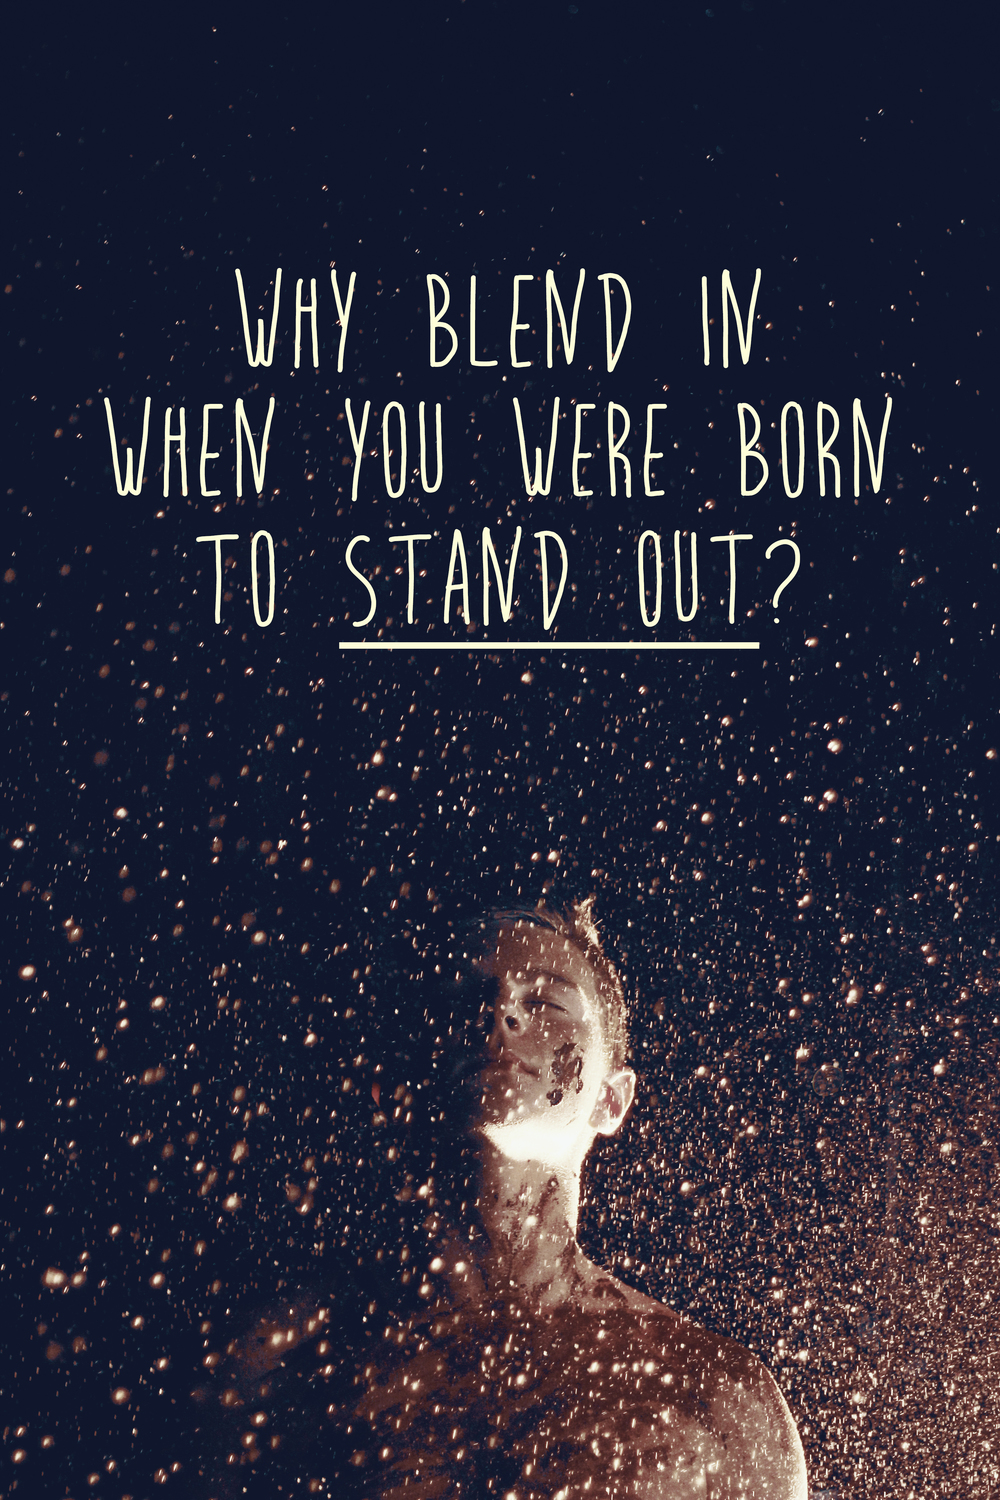 Why blend in when you were born to stand out? quote by Dr. Seuss | Violeta Nedkova